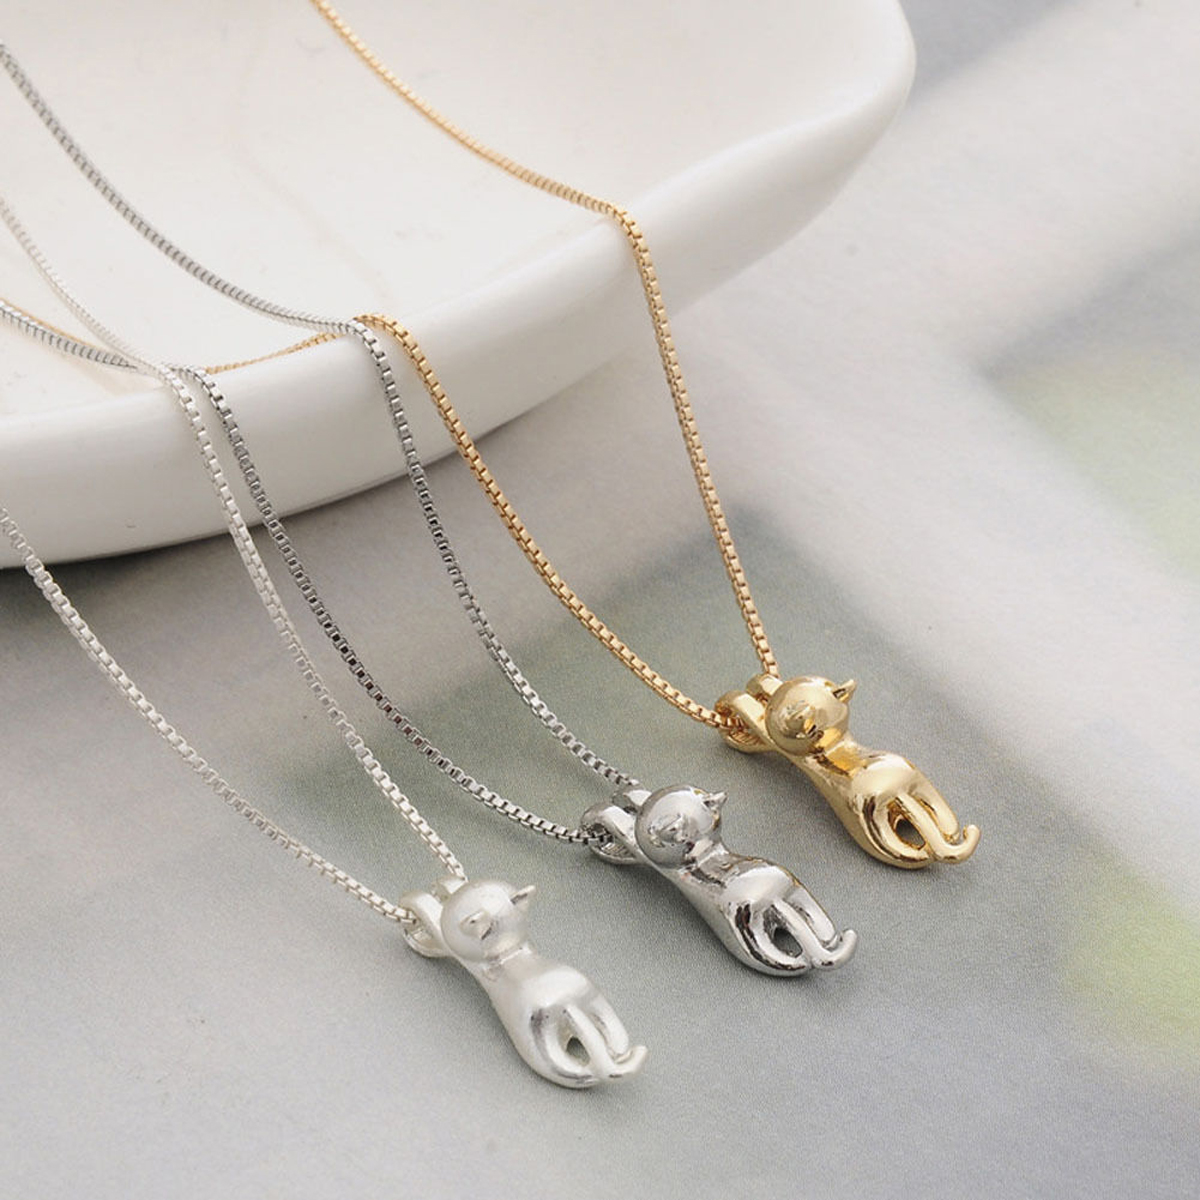 Fashion cute cat necklace pendant for women gift silver Trendy womens gifts 2015